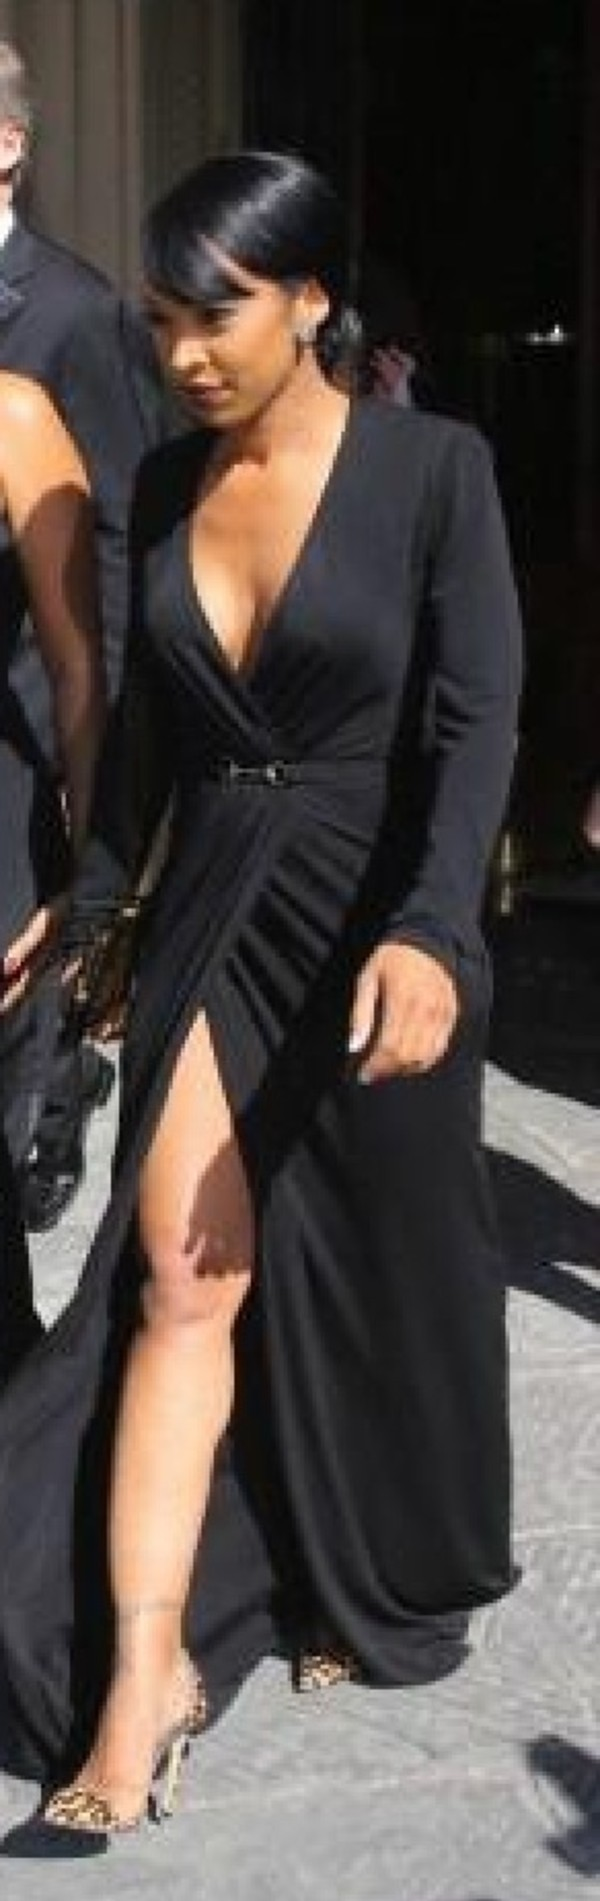 dress black dress thigh slit plunge neckline